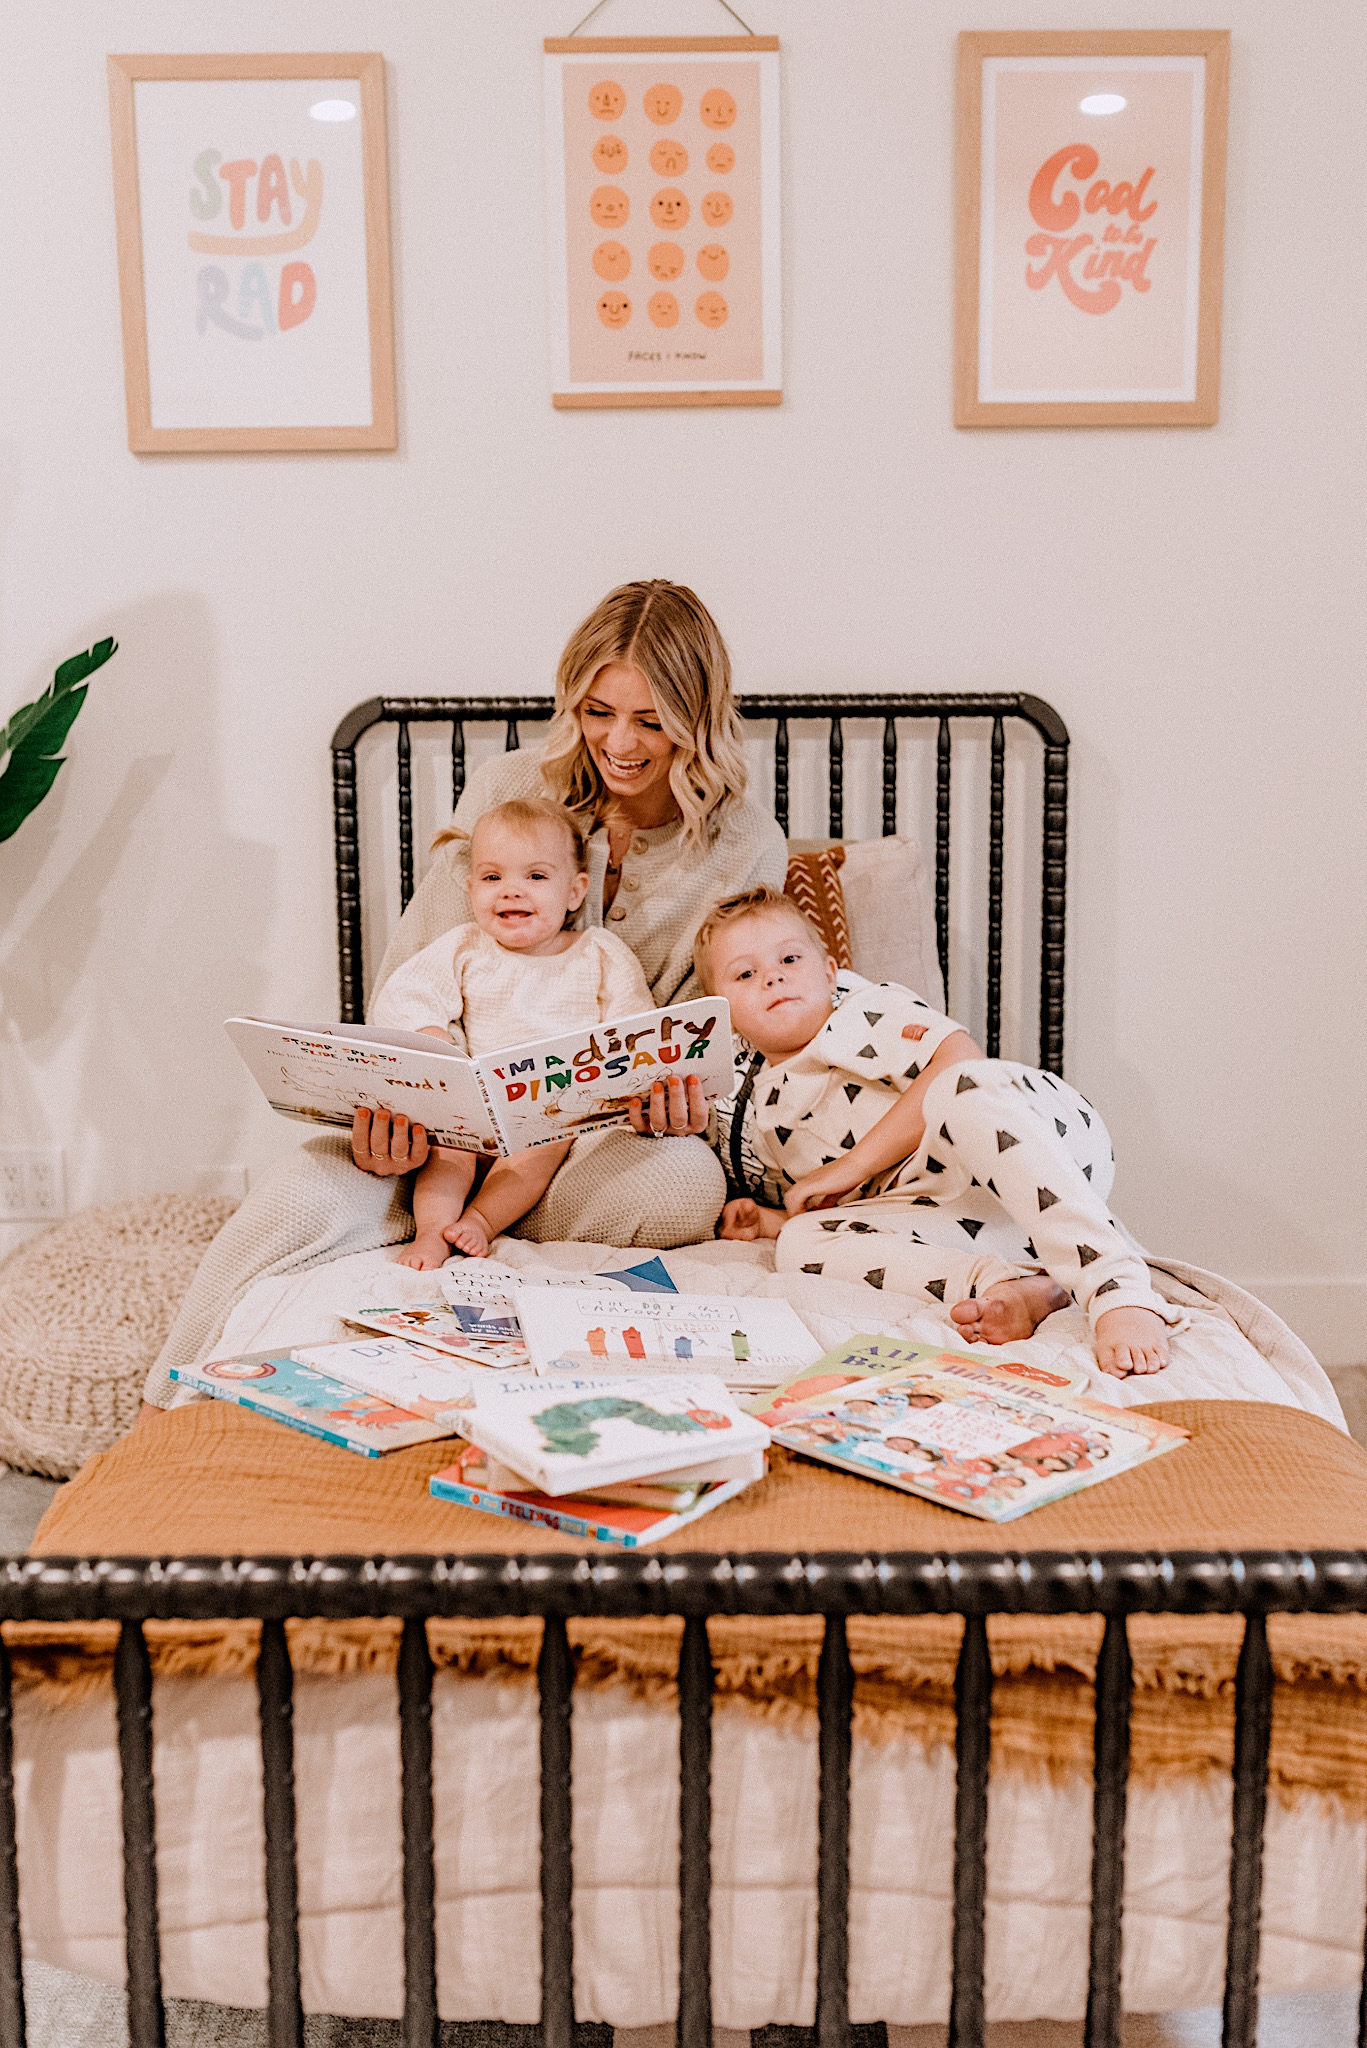 Best Children's Books by popular San Diego motherhood blog, Navy Grace: image of a mom sitting on a Jenny Lind bed with her son and daughter reading from a pile of children's books.